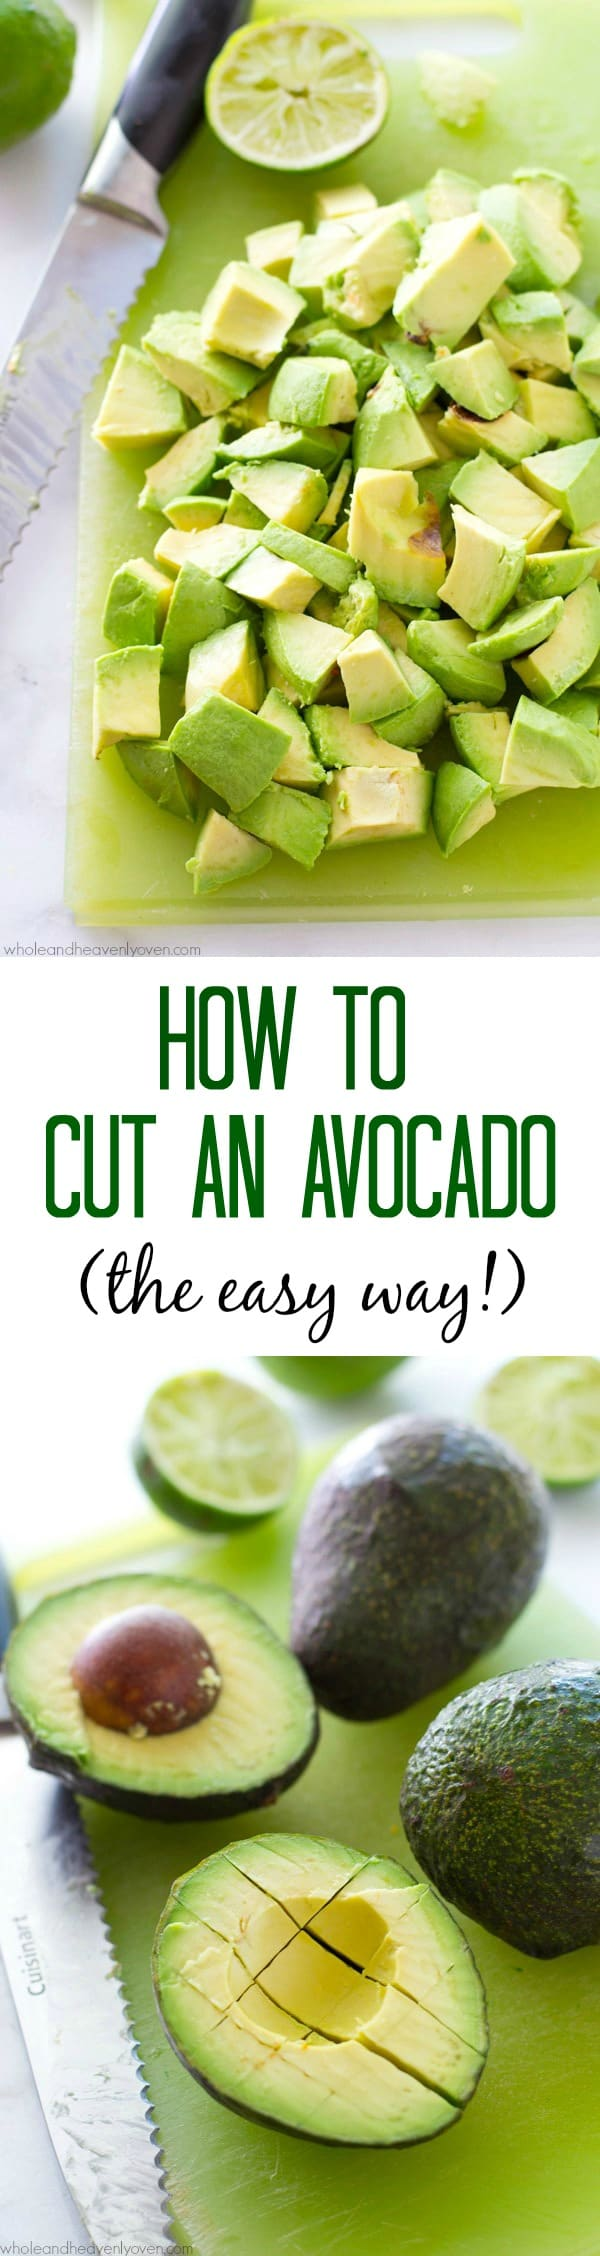 """Learn how to cut an avocado easily and quickly every time with this simple step-by-step photo tutorial! One simple little """"secret"""" revealed that will give you perfectly-cut avocado every time. @WholeHeavenly"""